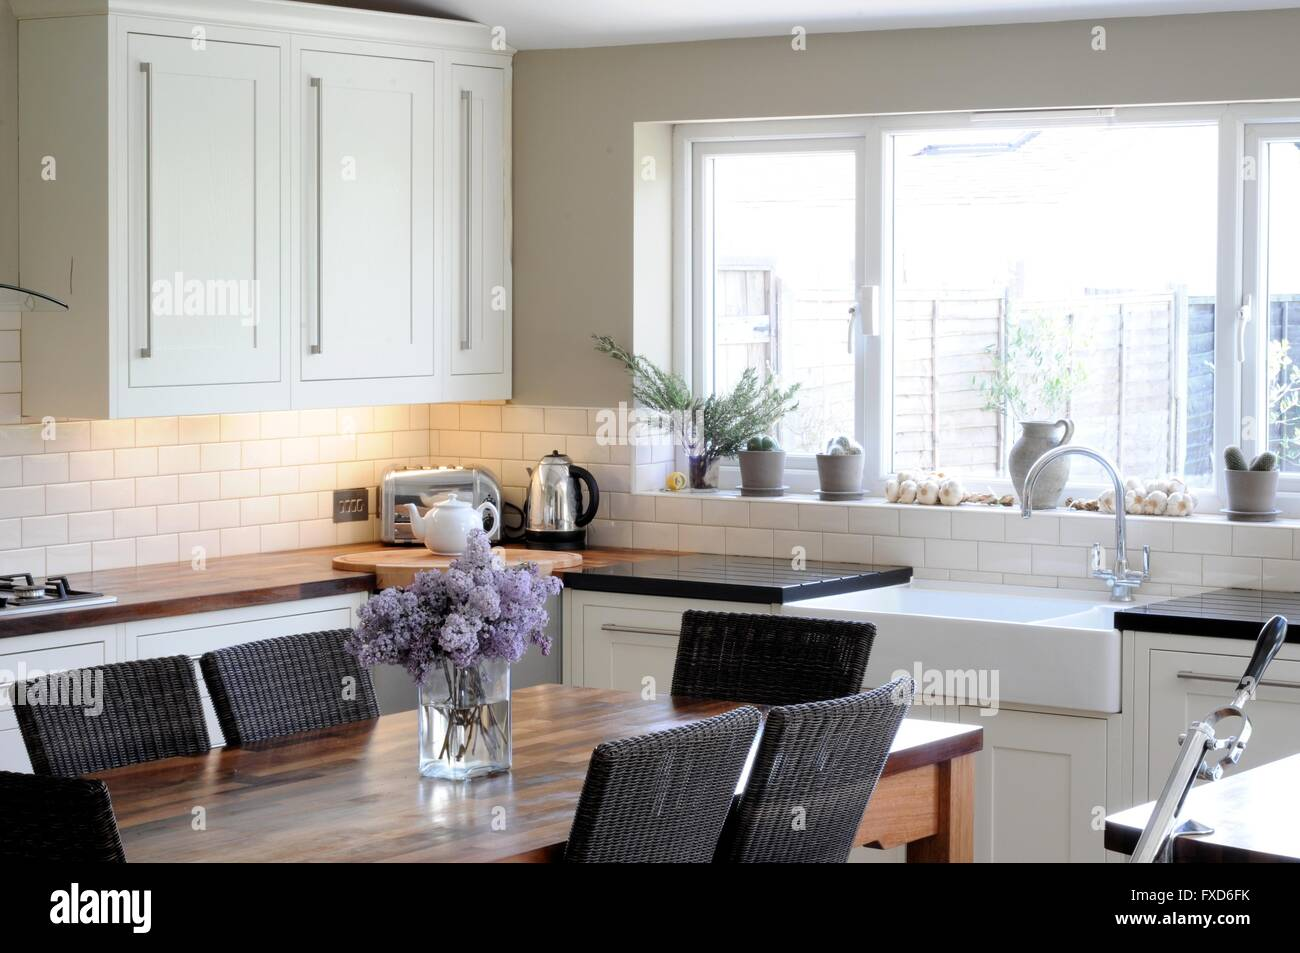 Modern Interiors Stockfotos & Modern Interiors Bilder - Alamy